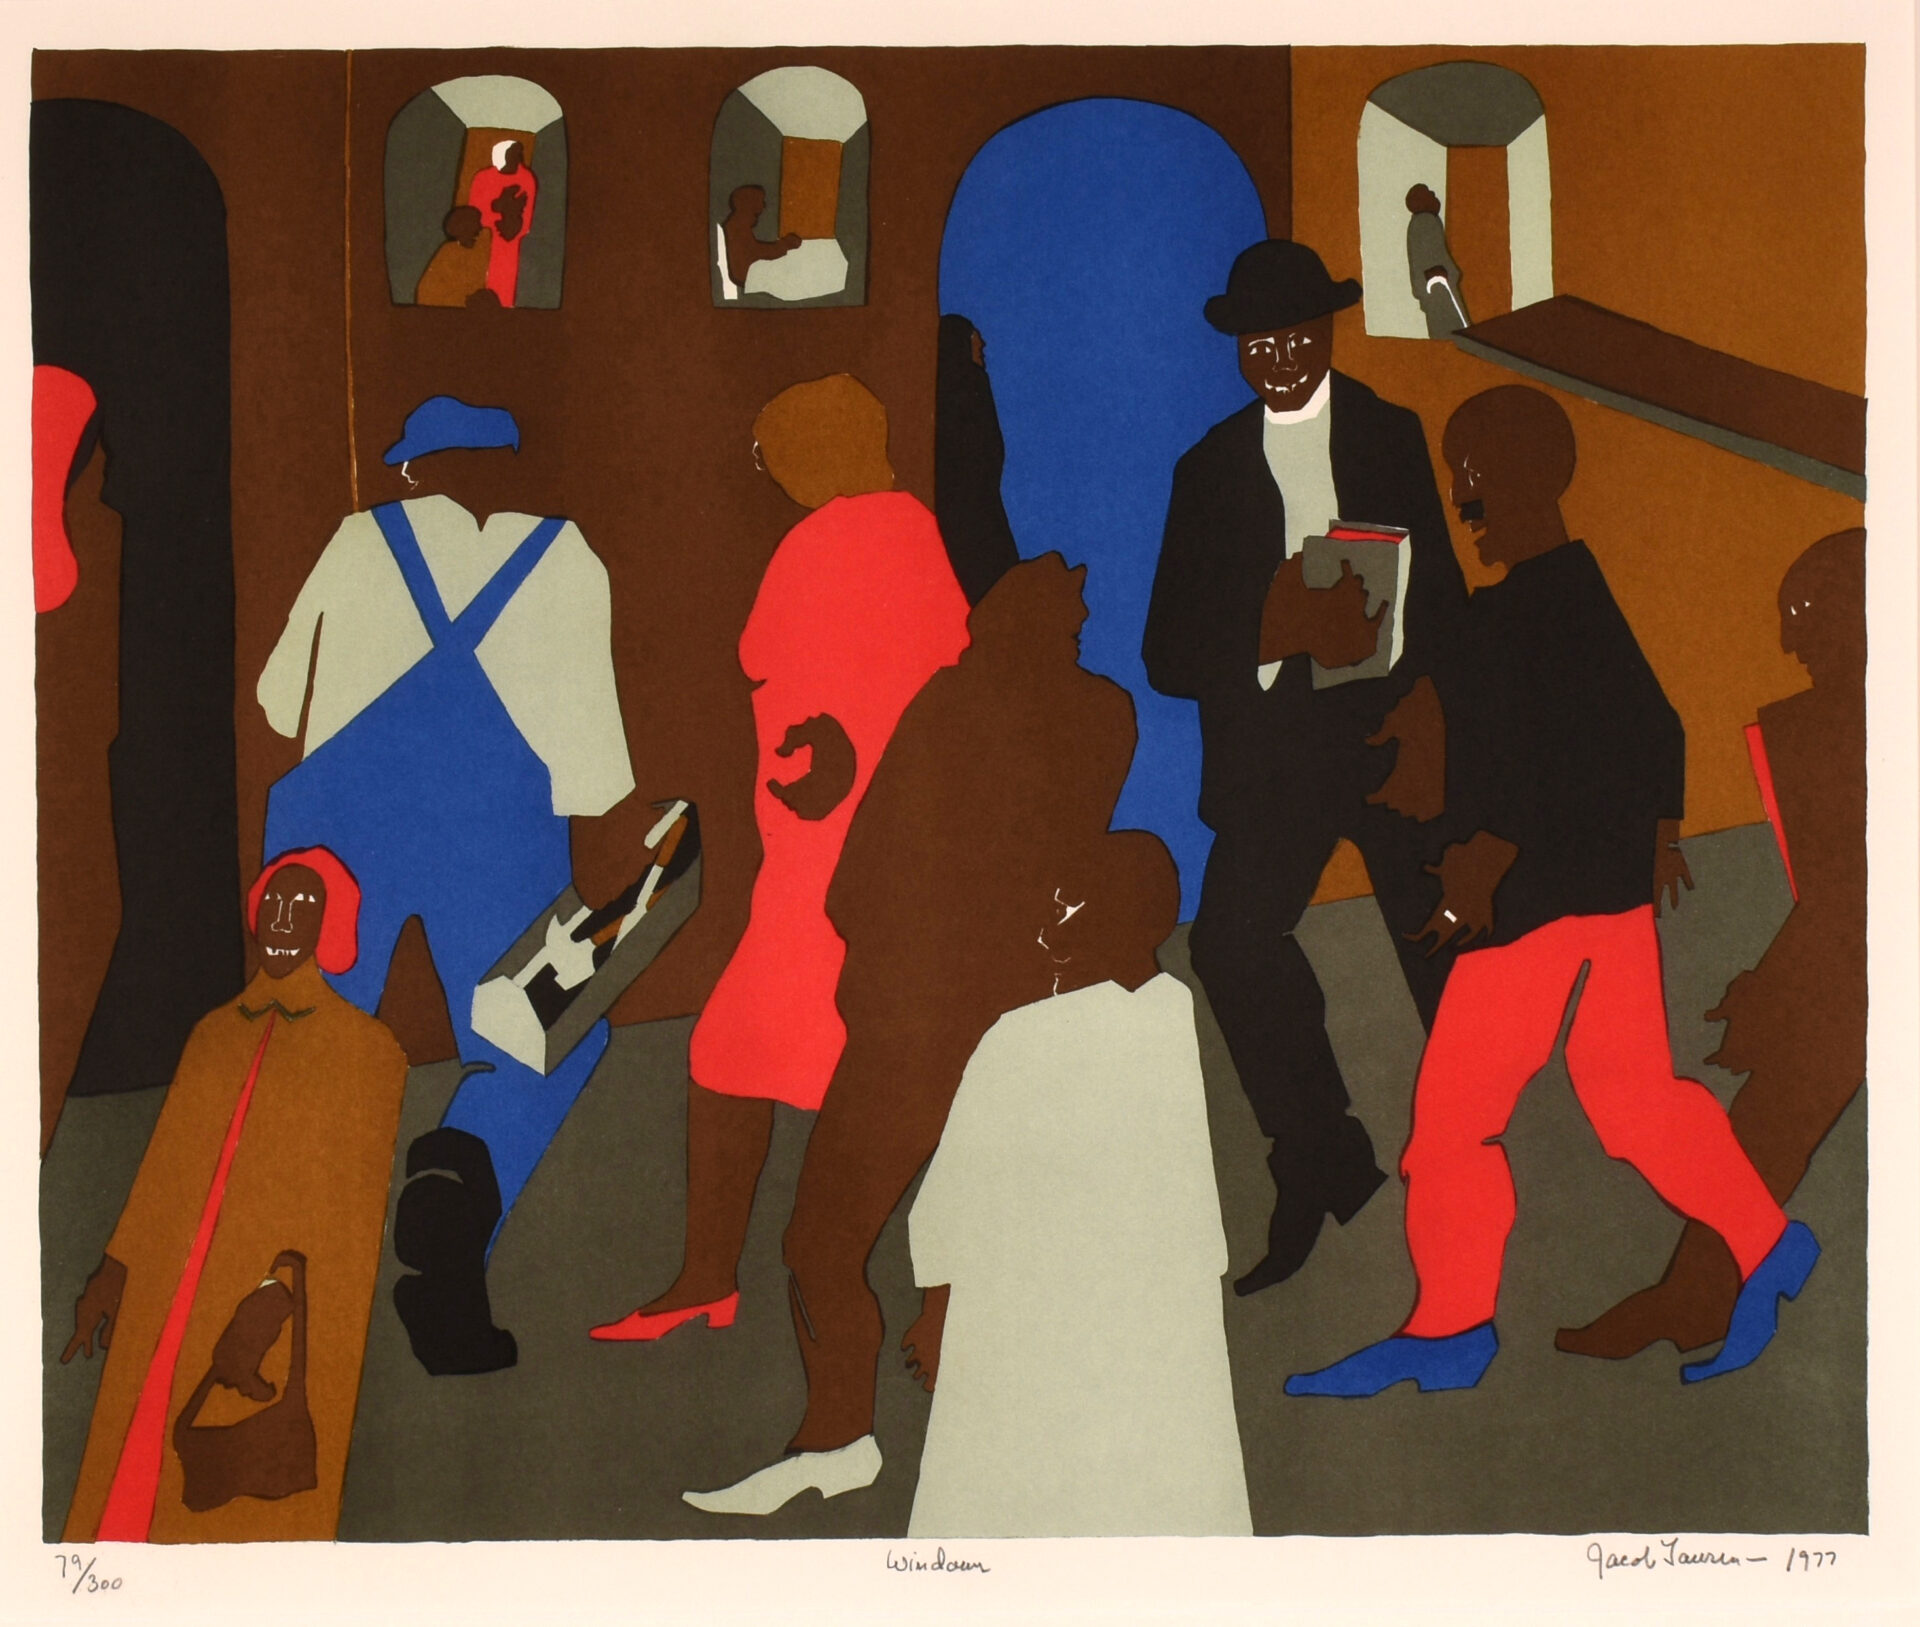 """Jacob Lawrence, """"Windows,"""" 1977. Silkscreen, ed. 70/300. Collection of Black Mountain College Museum + Arts Center. Gift of Gwendolyn Knight Lawrence."""